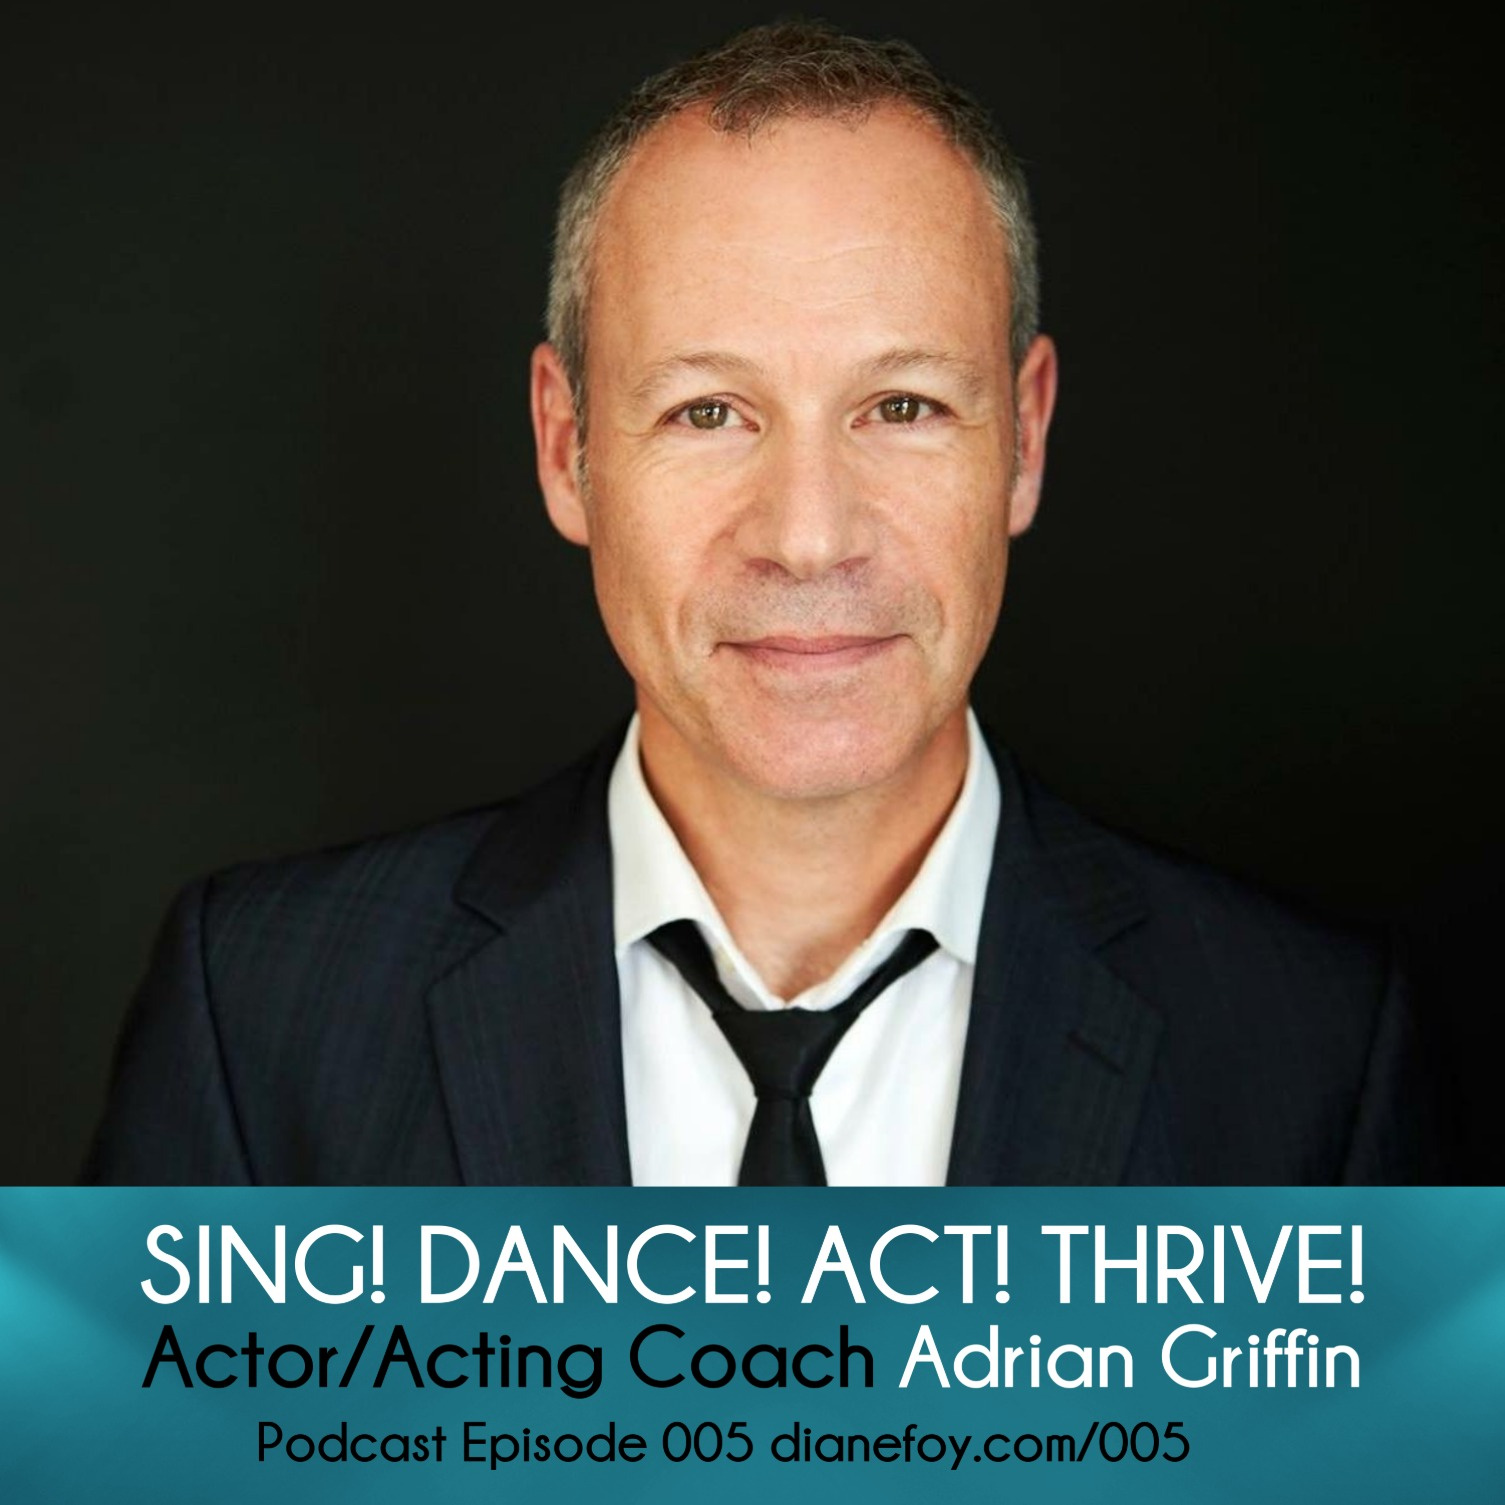 Adrian Griffin, Actor/Acting Coach